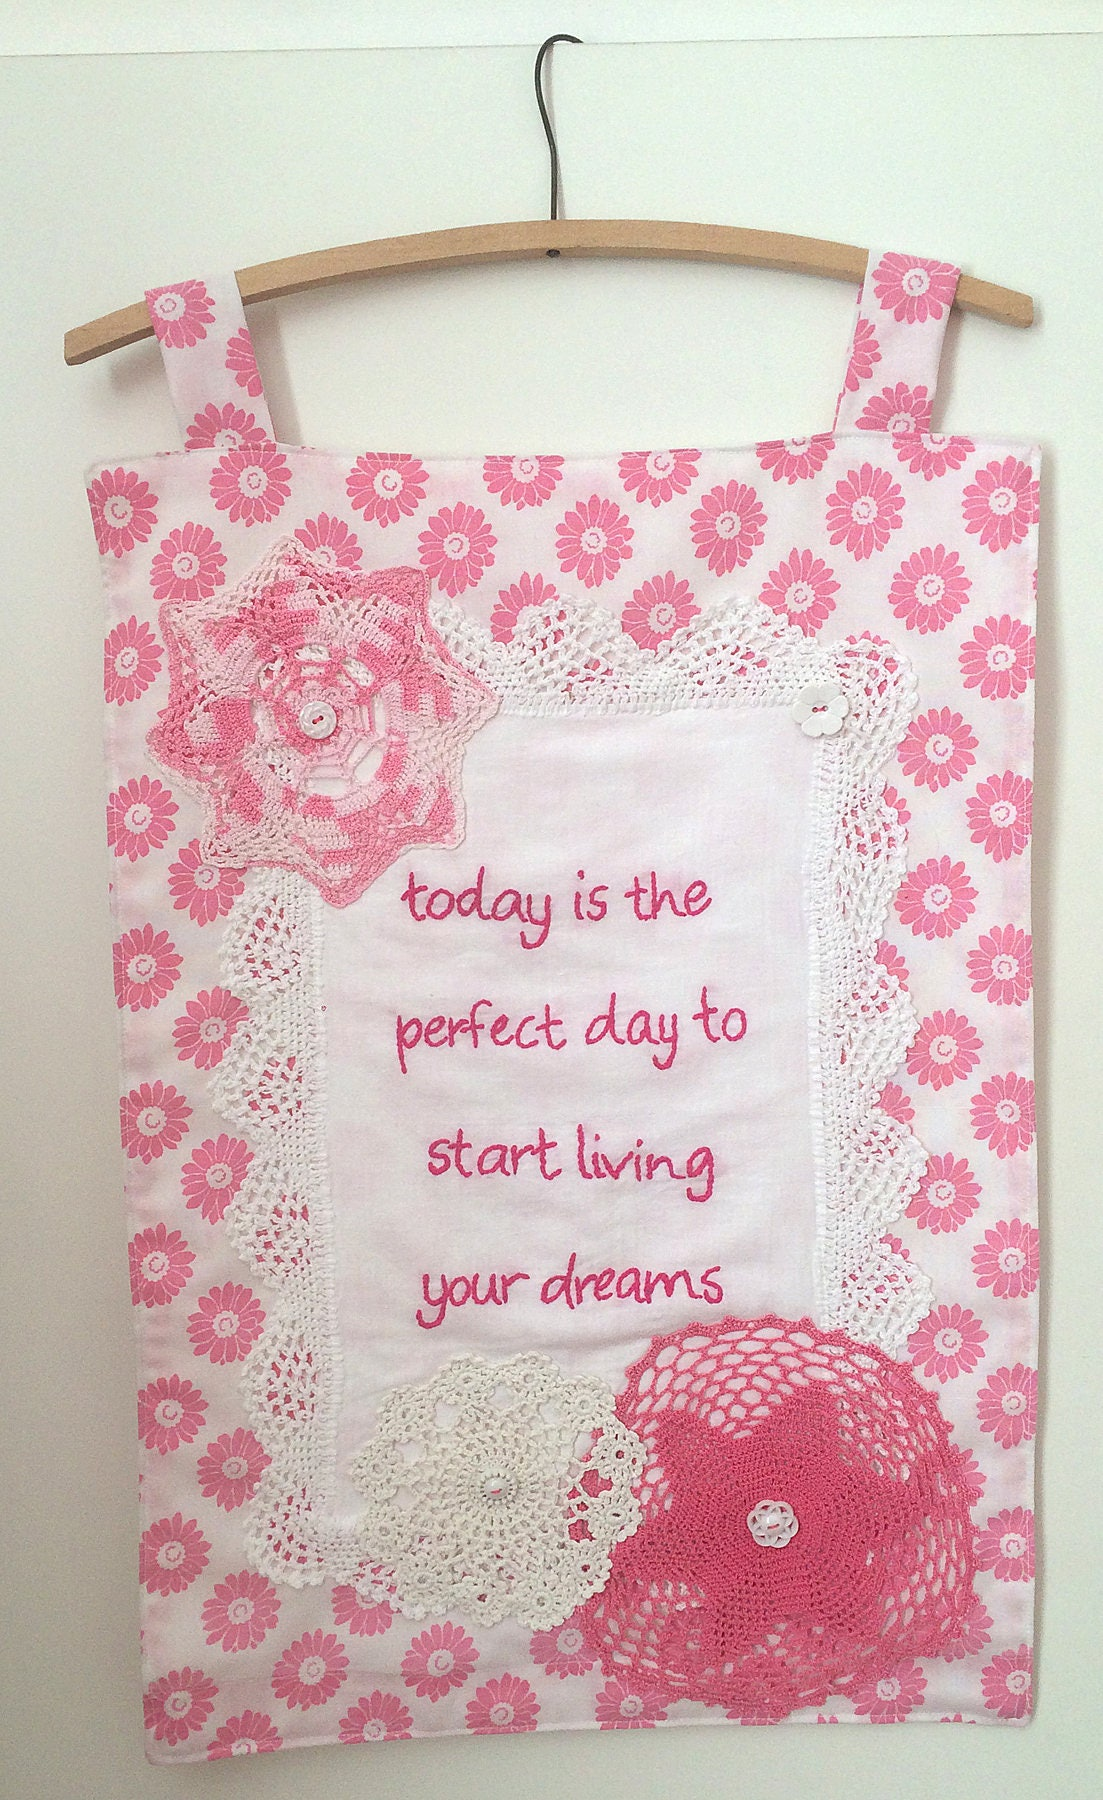 Embroidered Wall Hanging Banner  Today Is The Perfect day To Start Living Your Dreams  Vintage Pink Fabric  Doilies